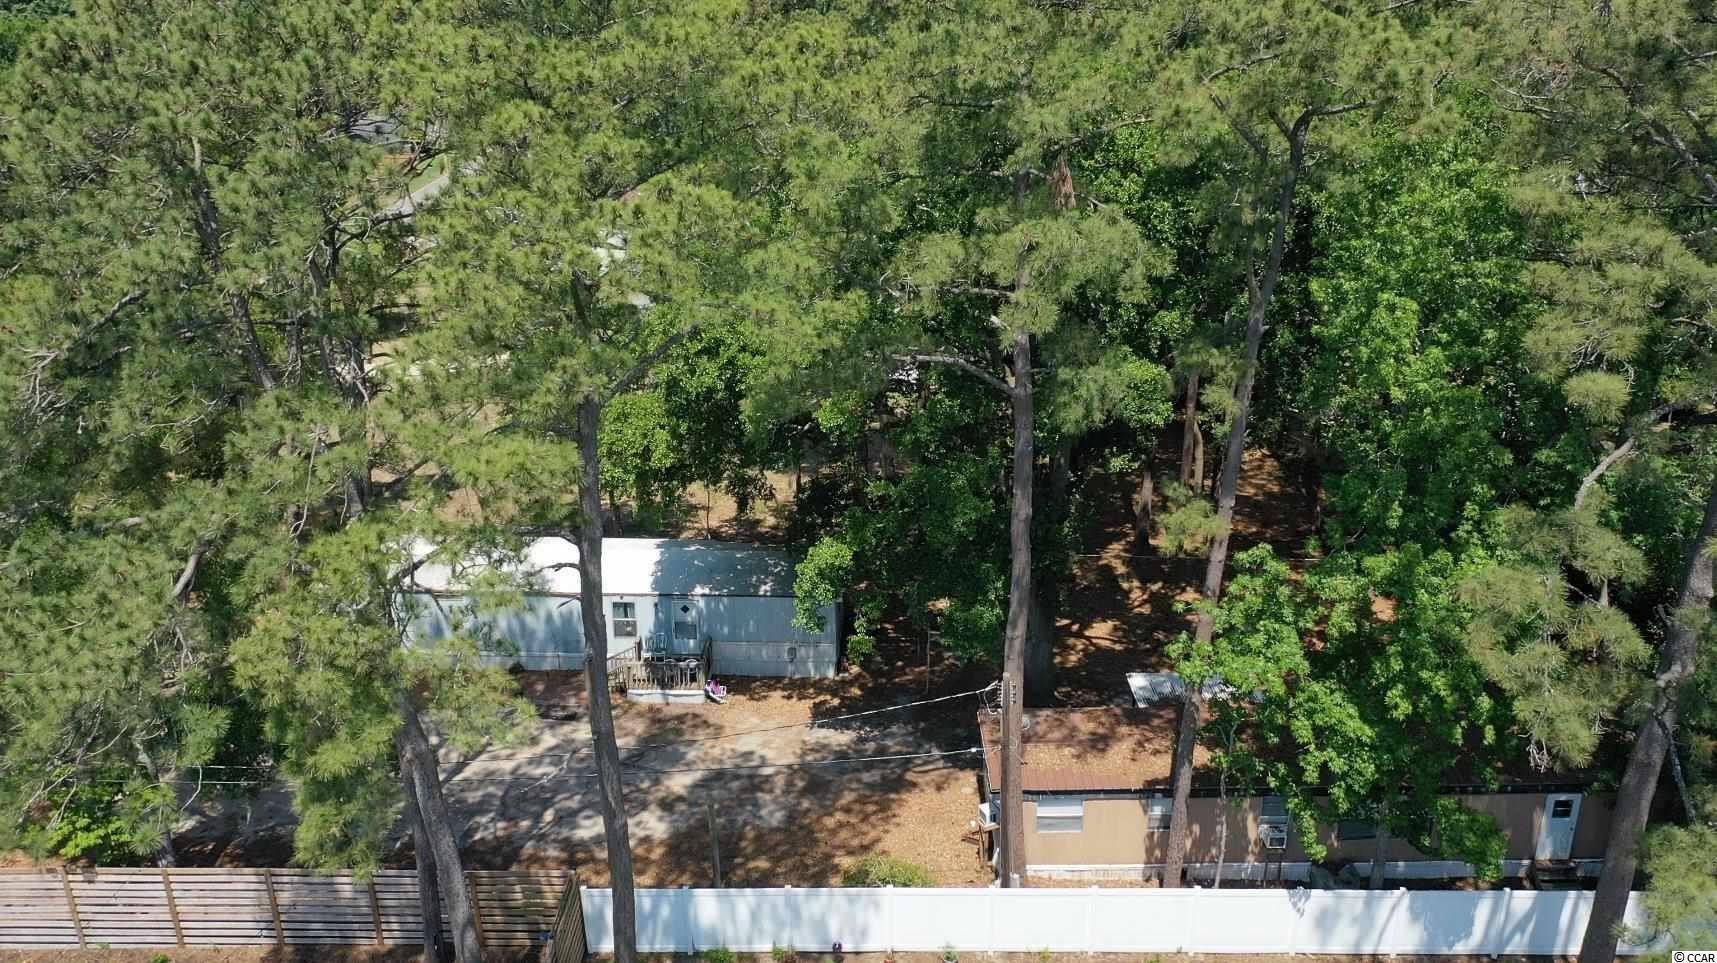 This wooded lot offers two income producing single wide manufactured homes and easy access to the boat landing at the end of Stanley Drive. First home includes two bedrooms and two baths with the second home presenting two bedrooms and a single bath. This property affords you easy access to the beach and golfing along with all of the other activities and happenings in Myrtle Beach & Murrells Inlet including fun eateries, award winning off-Broadway shows, public fishing piers, Marsh Walk, and intriguing shopping adventures along the Grand Strand. Conveniently located to your everyday needs, including grocery stores, banks, post offices, medical centers, doctors' offices, and pharmacies.